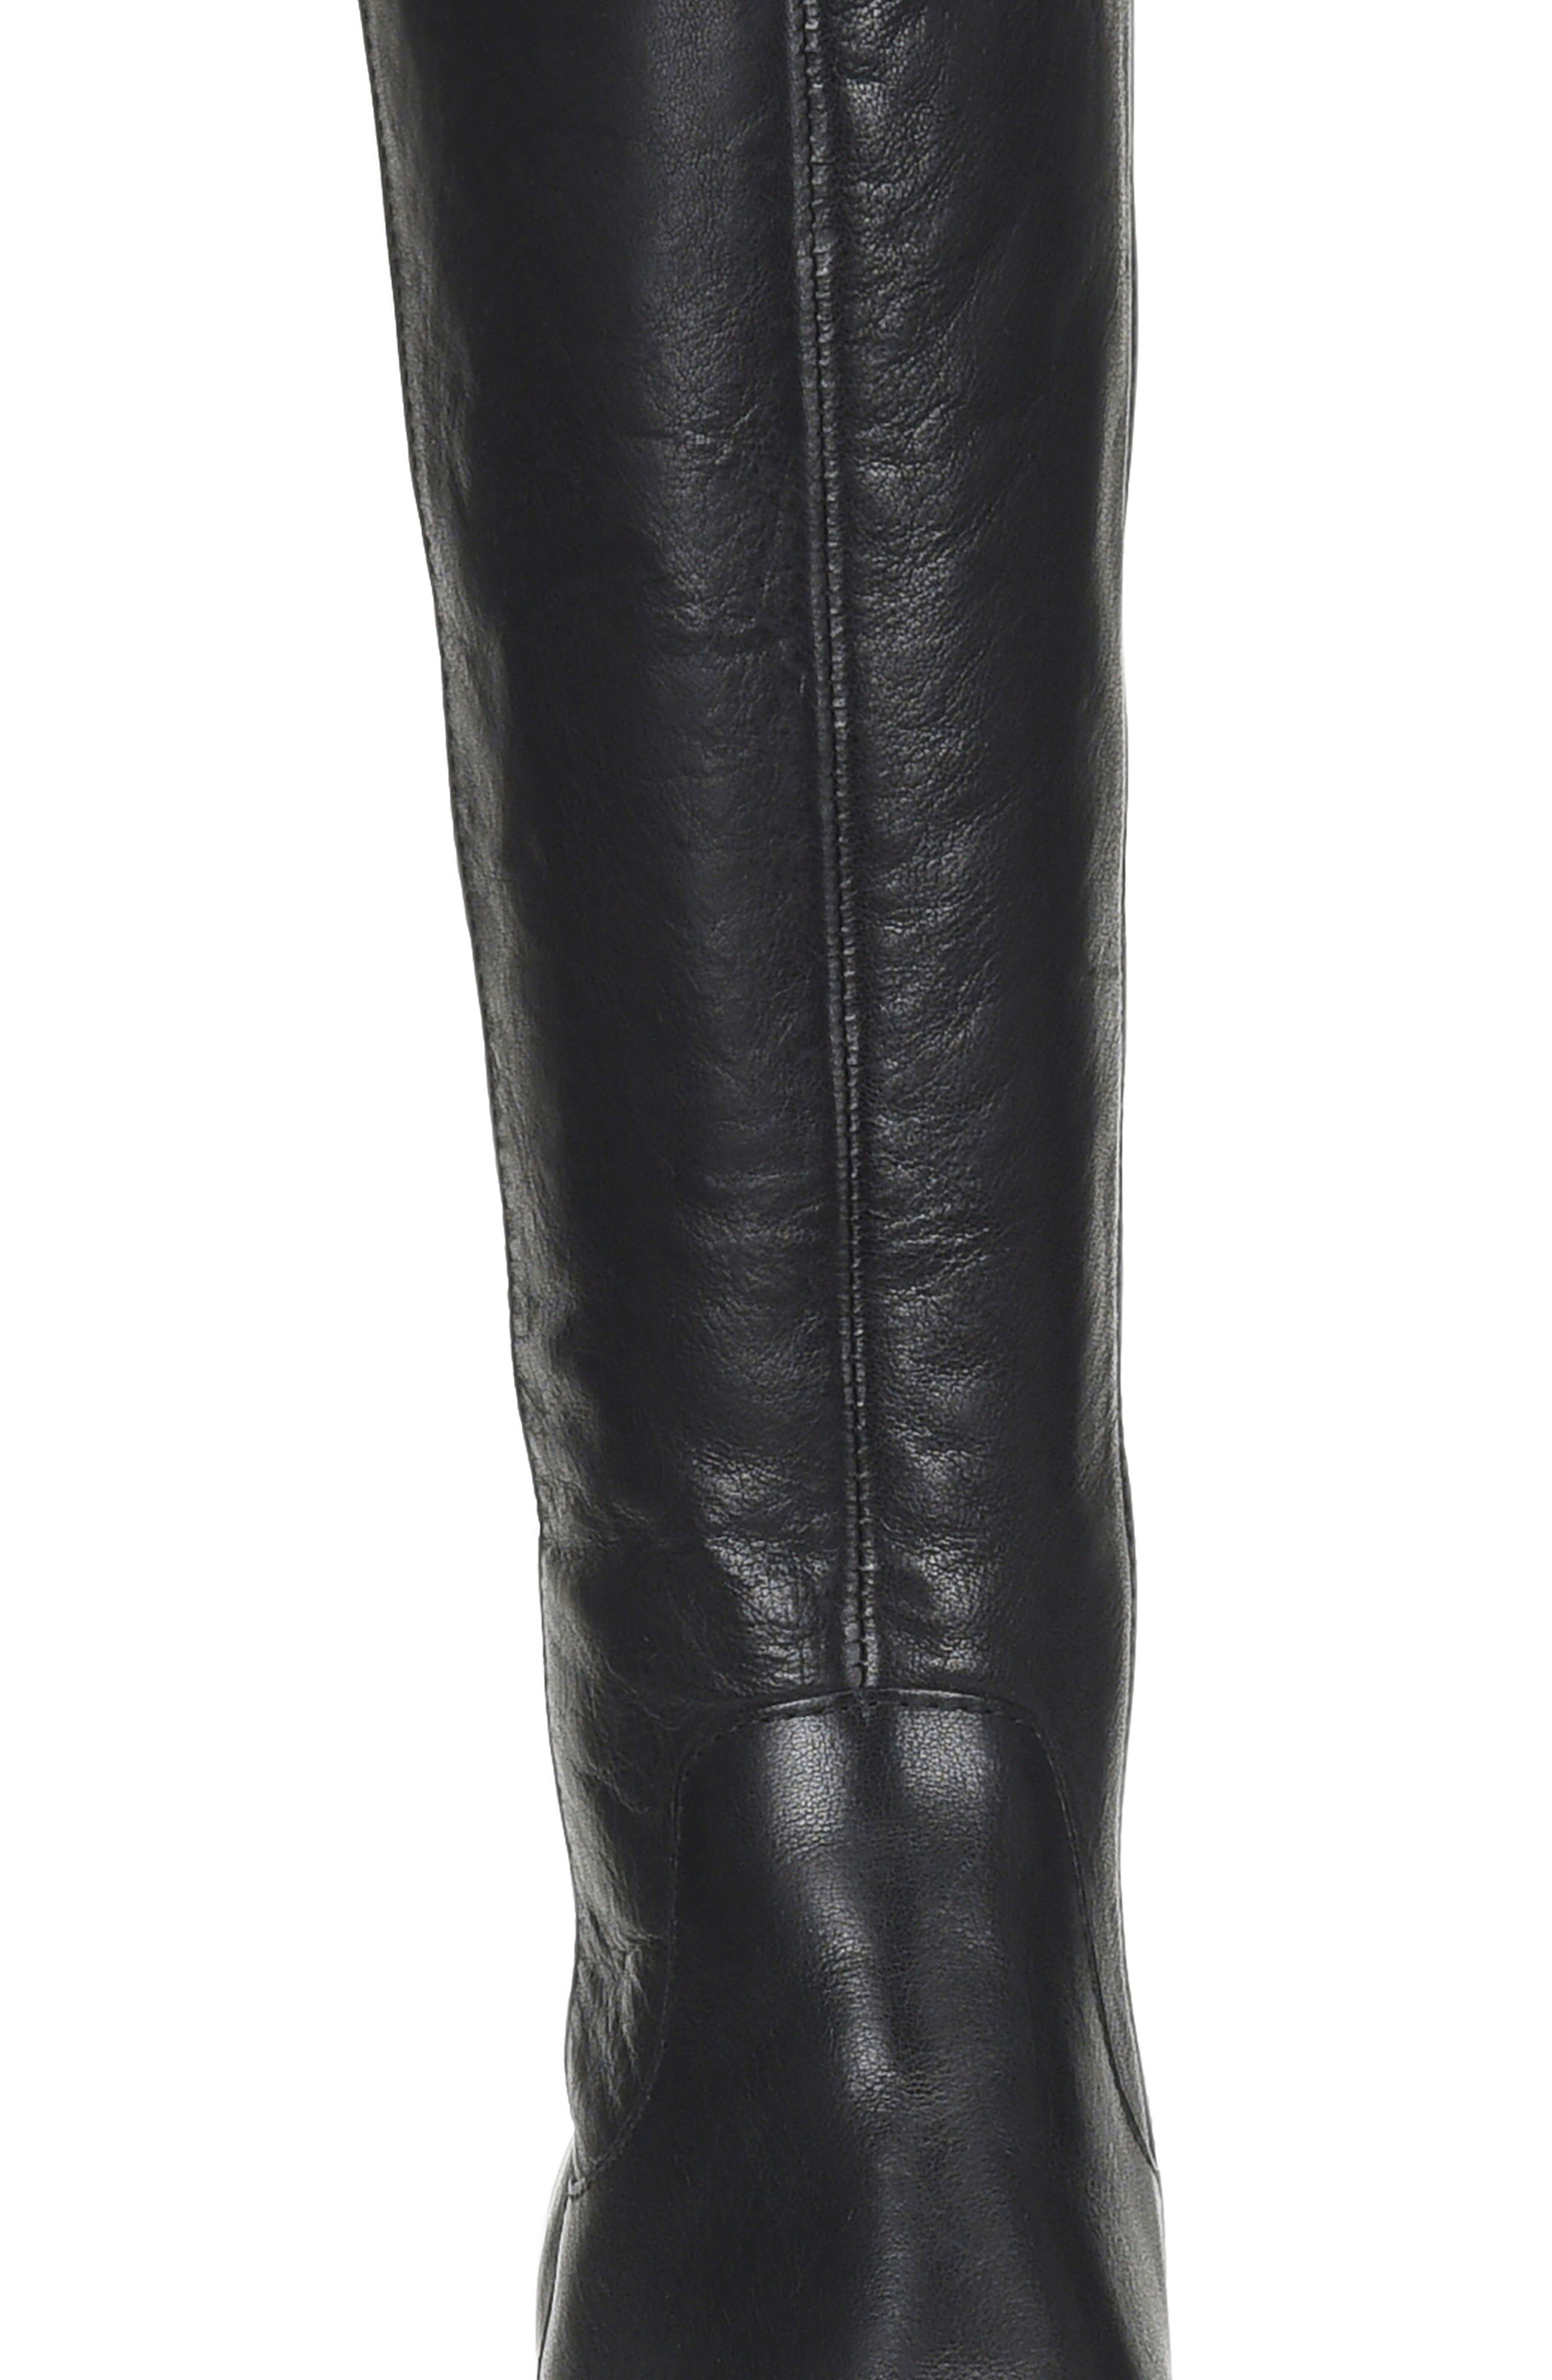 Avala Knee High Boot,                             Alternate thumbnail 4, color,                             Black Leather